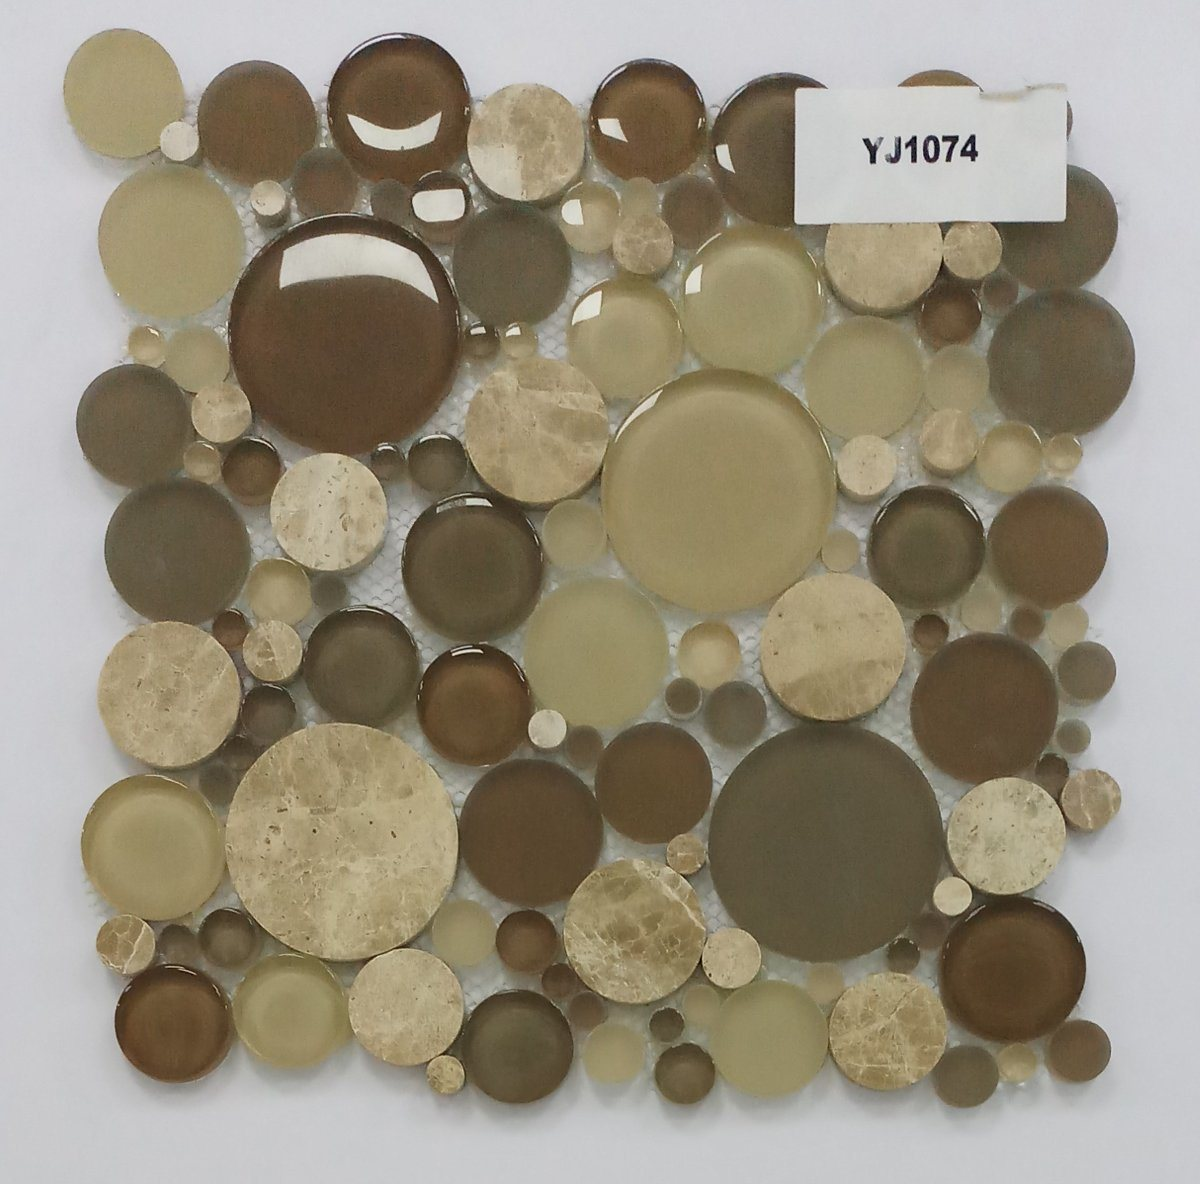 hot item new pattern brown round glass mix stone mosaic perfect for kitchen backsplash and bathroom tile